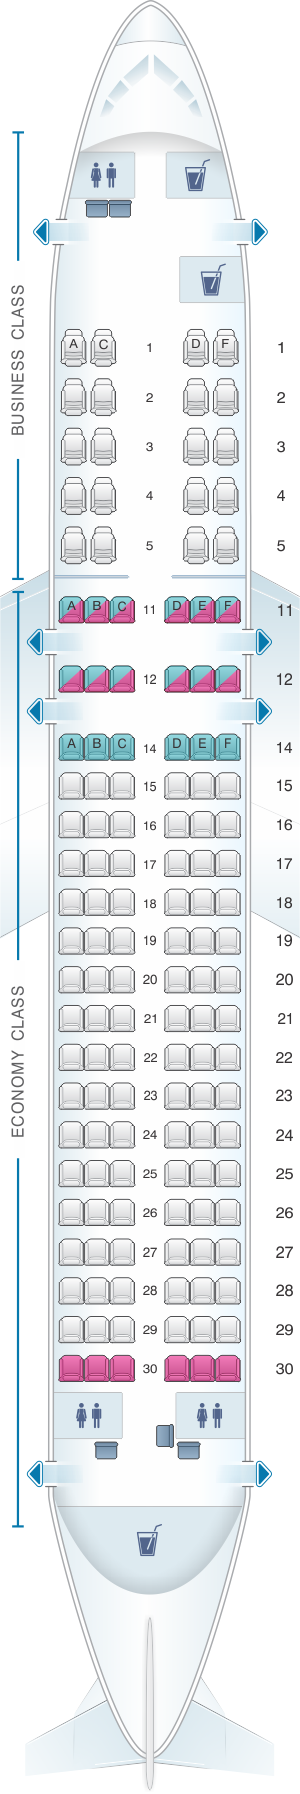 Seat map for Kingfisher Airlines Airbus A320 200 134PAX